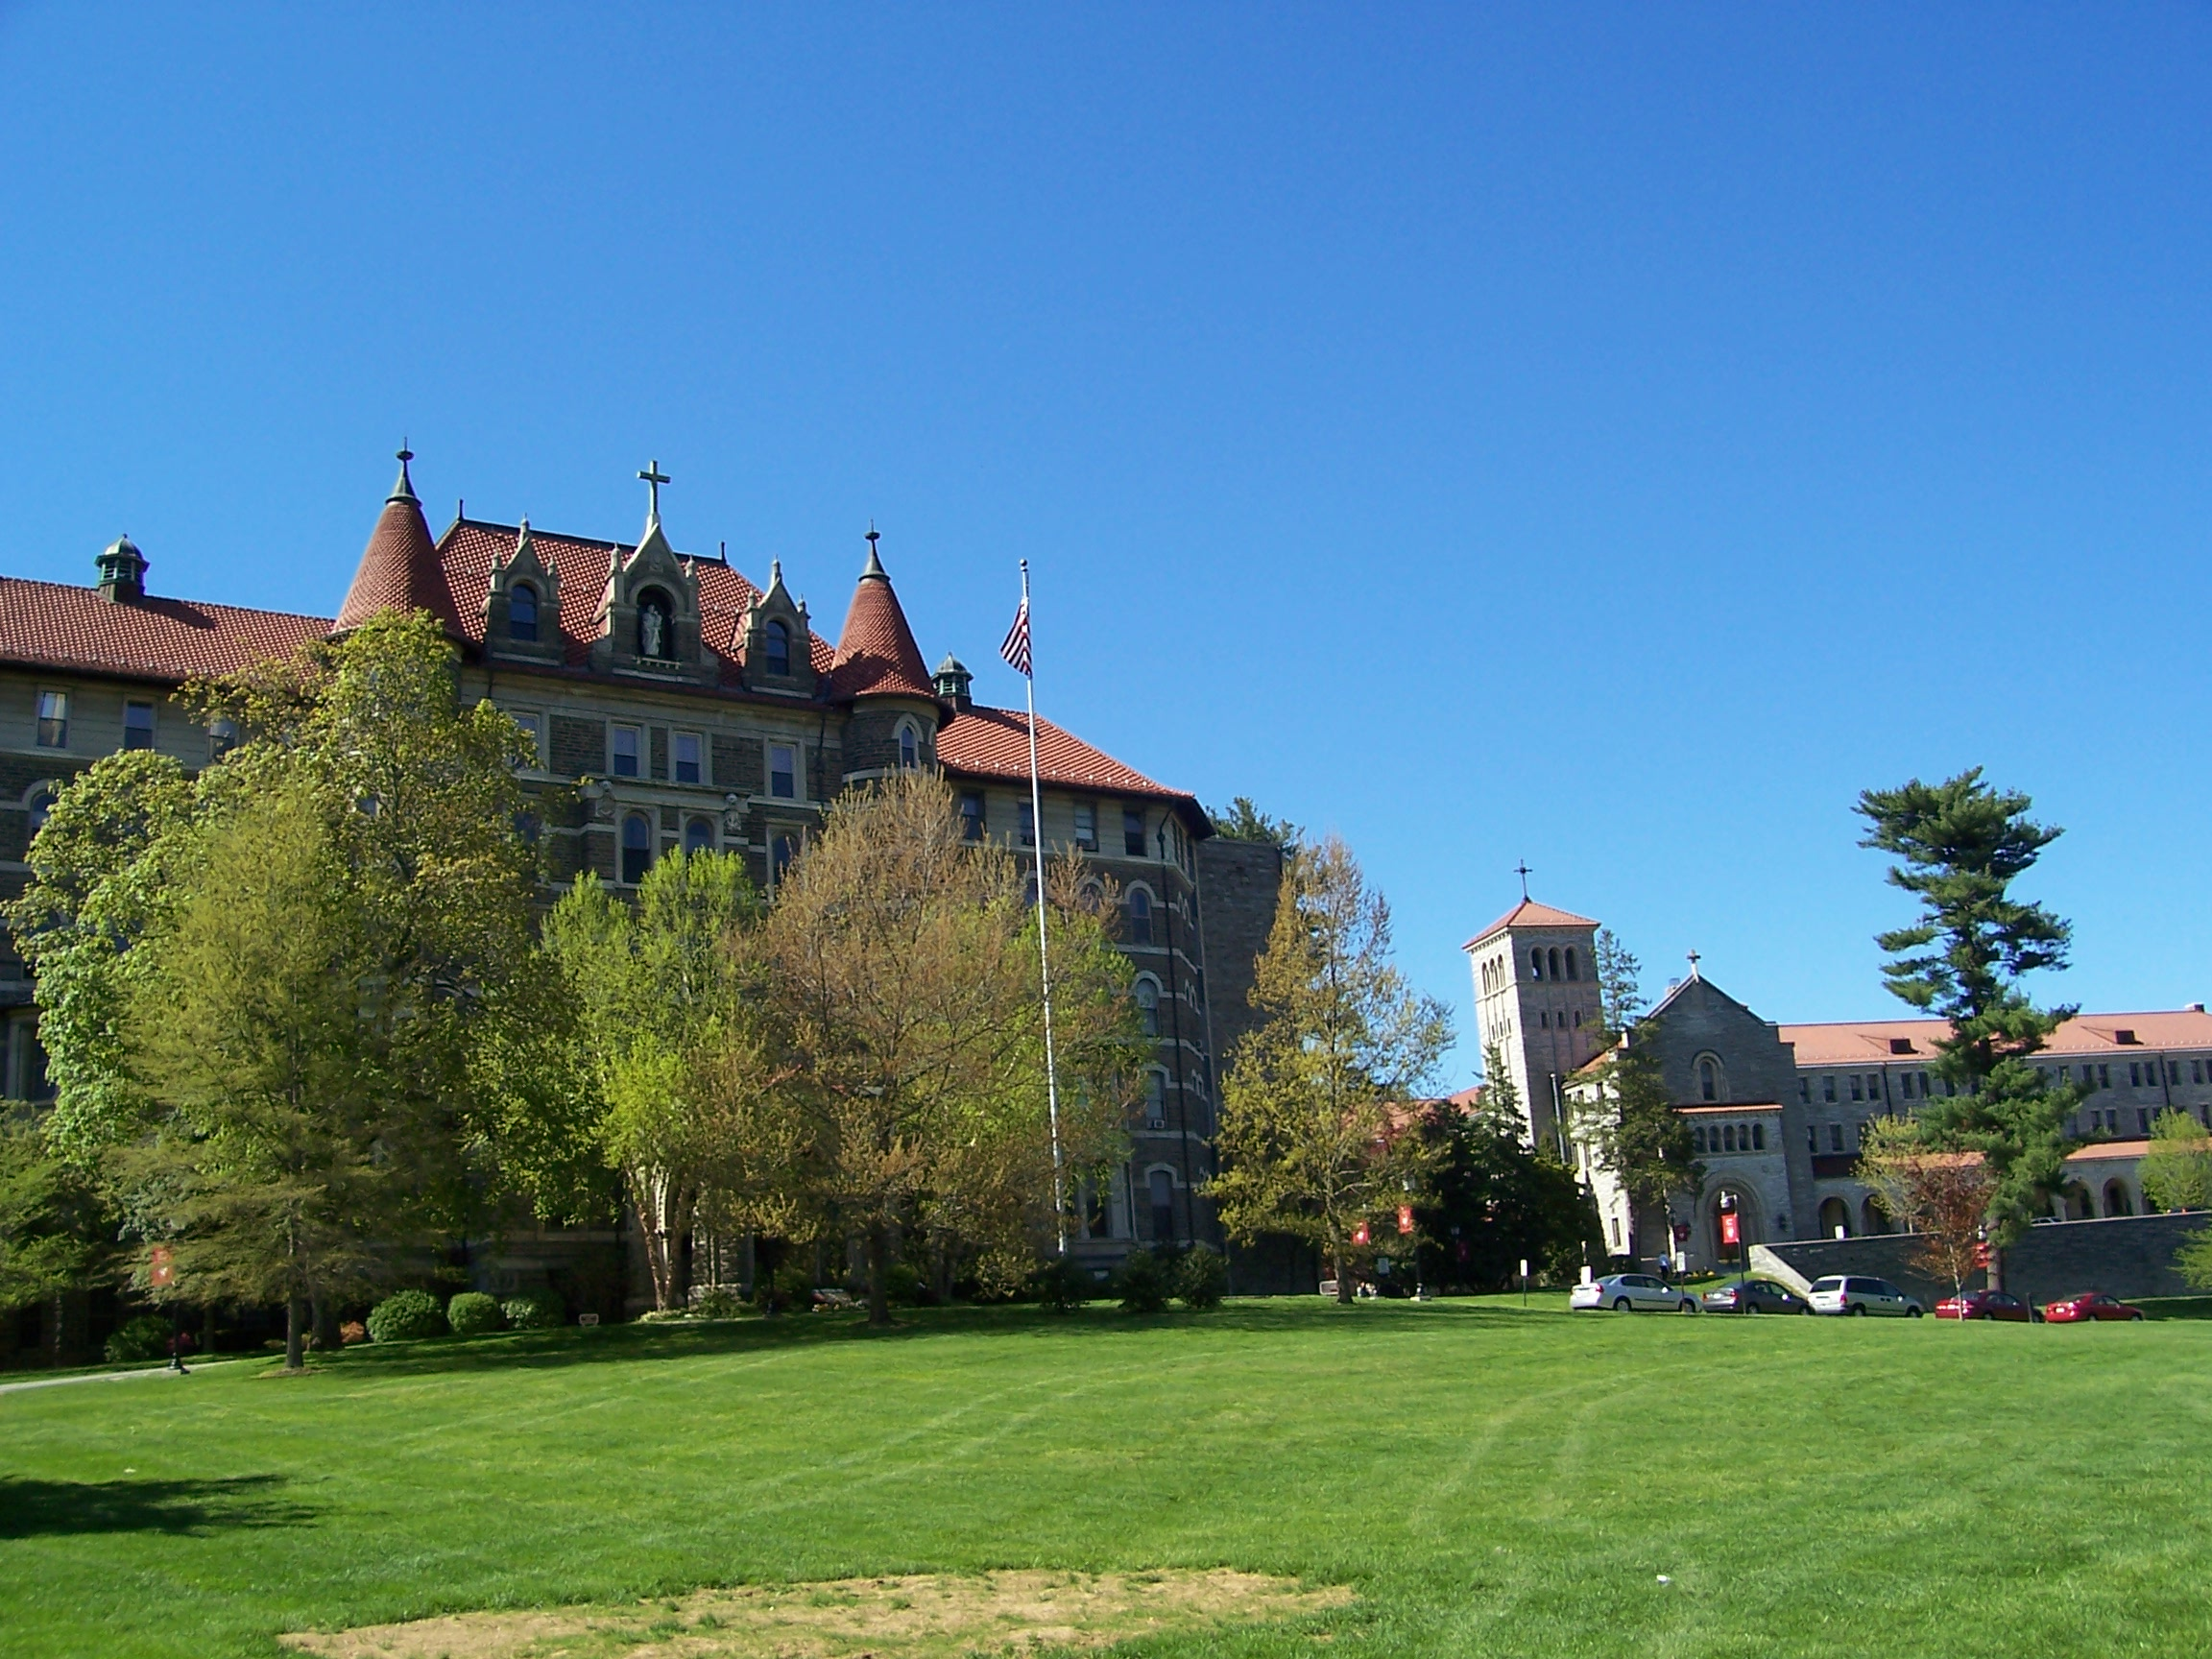 image of Chestnut Hill College